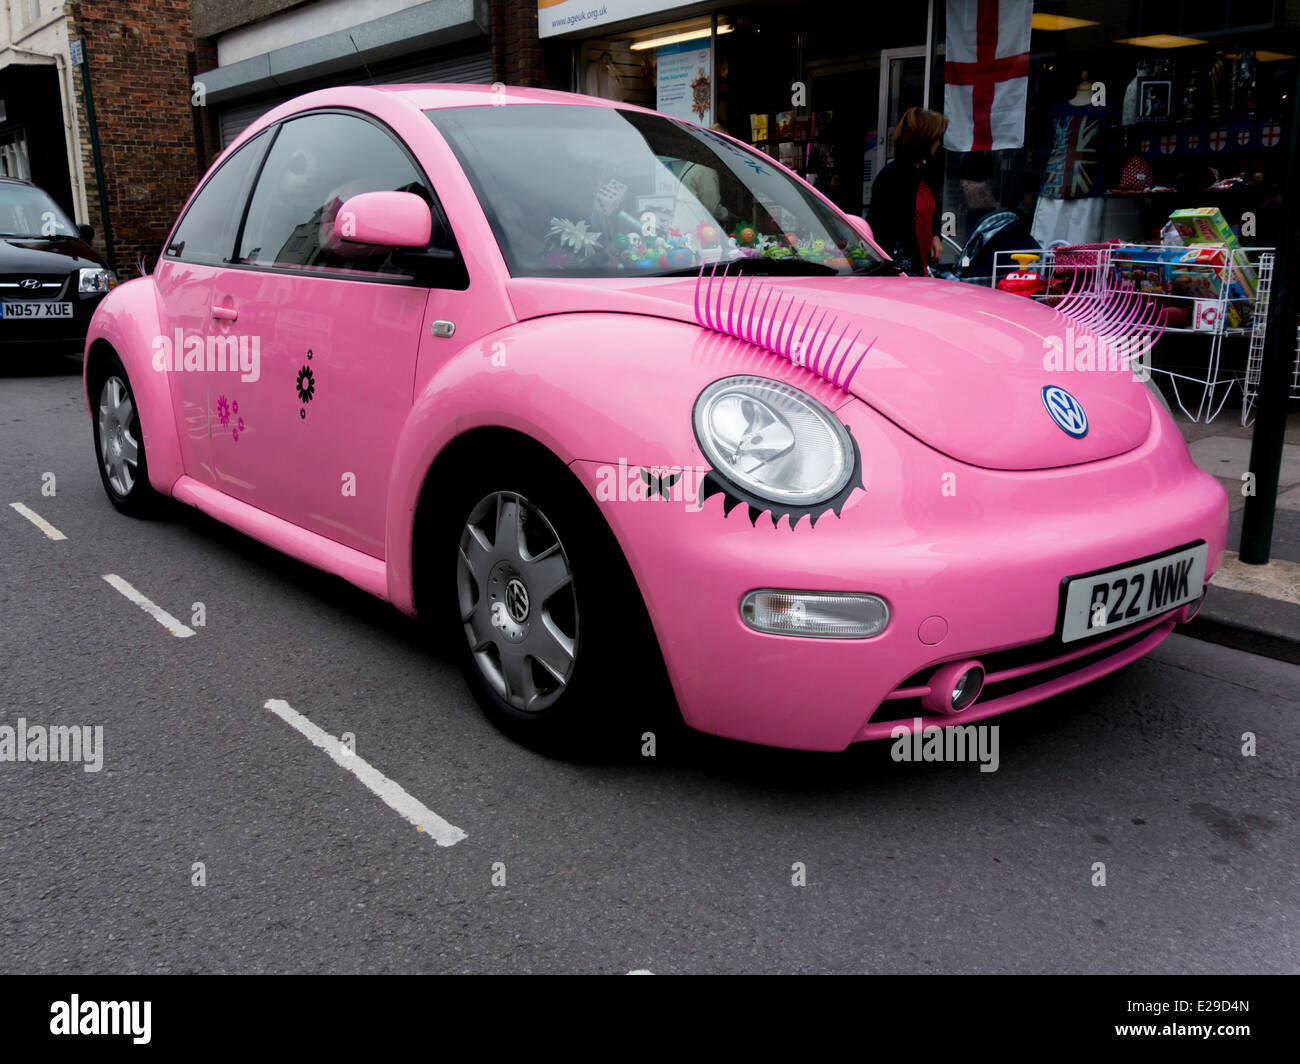 Modern Volkswagen Beetle car in exaggerated 'girly' colours bright pink with false eyebrows over the headlights - Stock Image